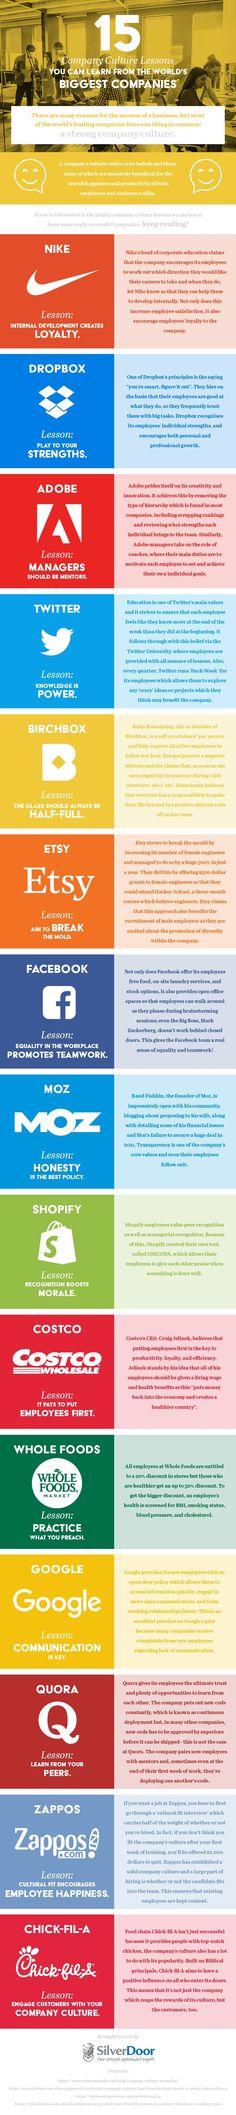 15 Company Culture Lessons You Can Learn From The World's Biggest Companies #Infographic #Business